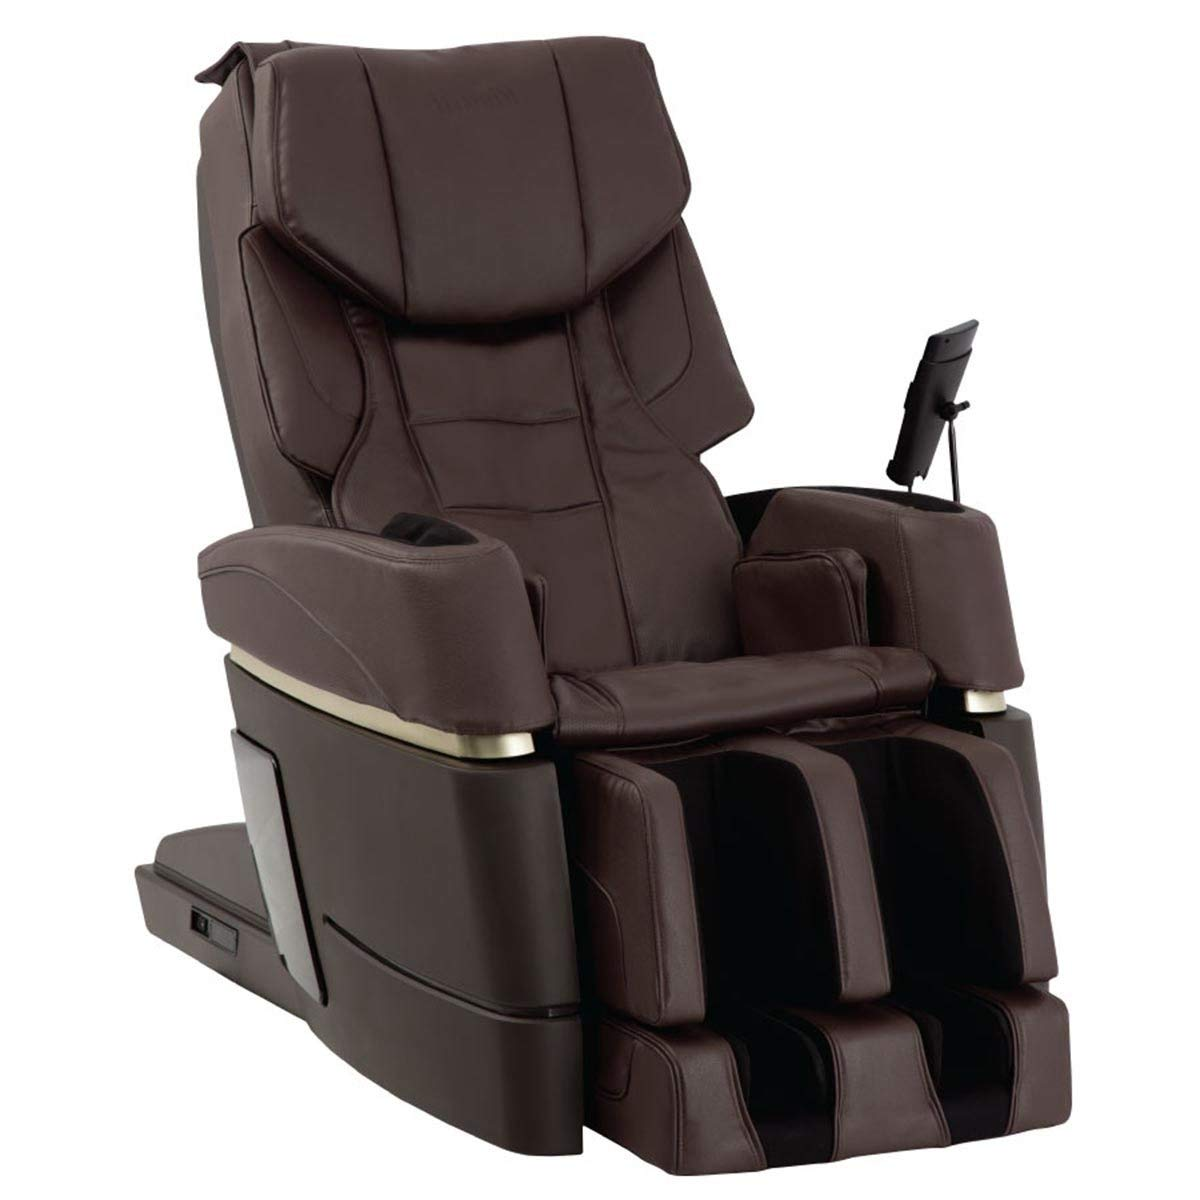 Top 10 Best Japanese Massage ChairReviews in 2021 2